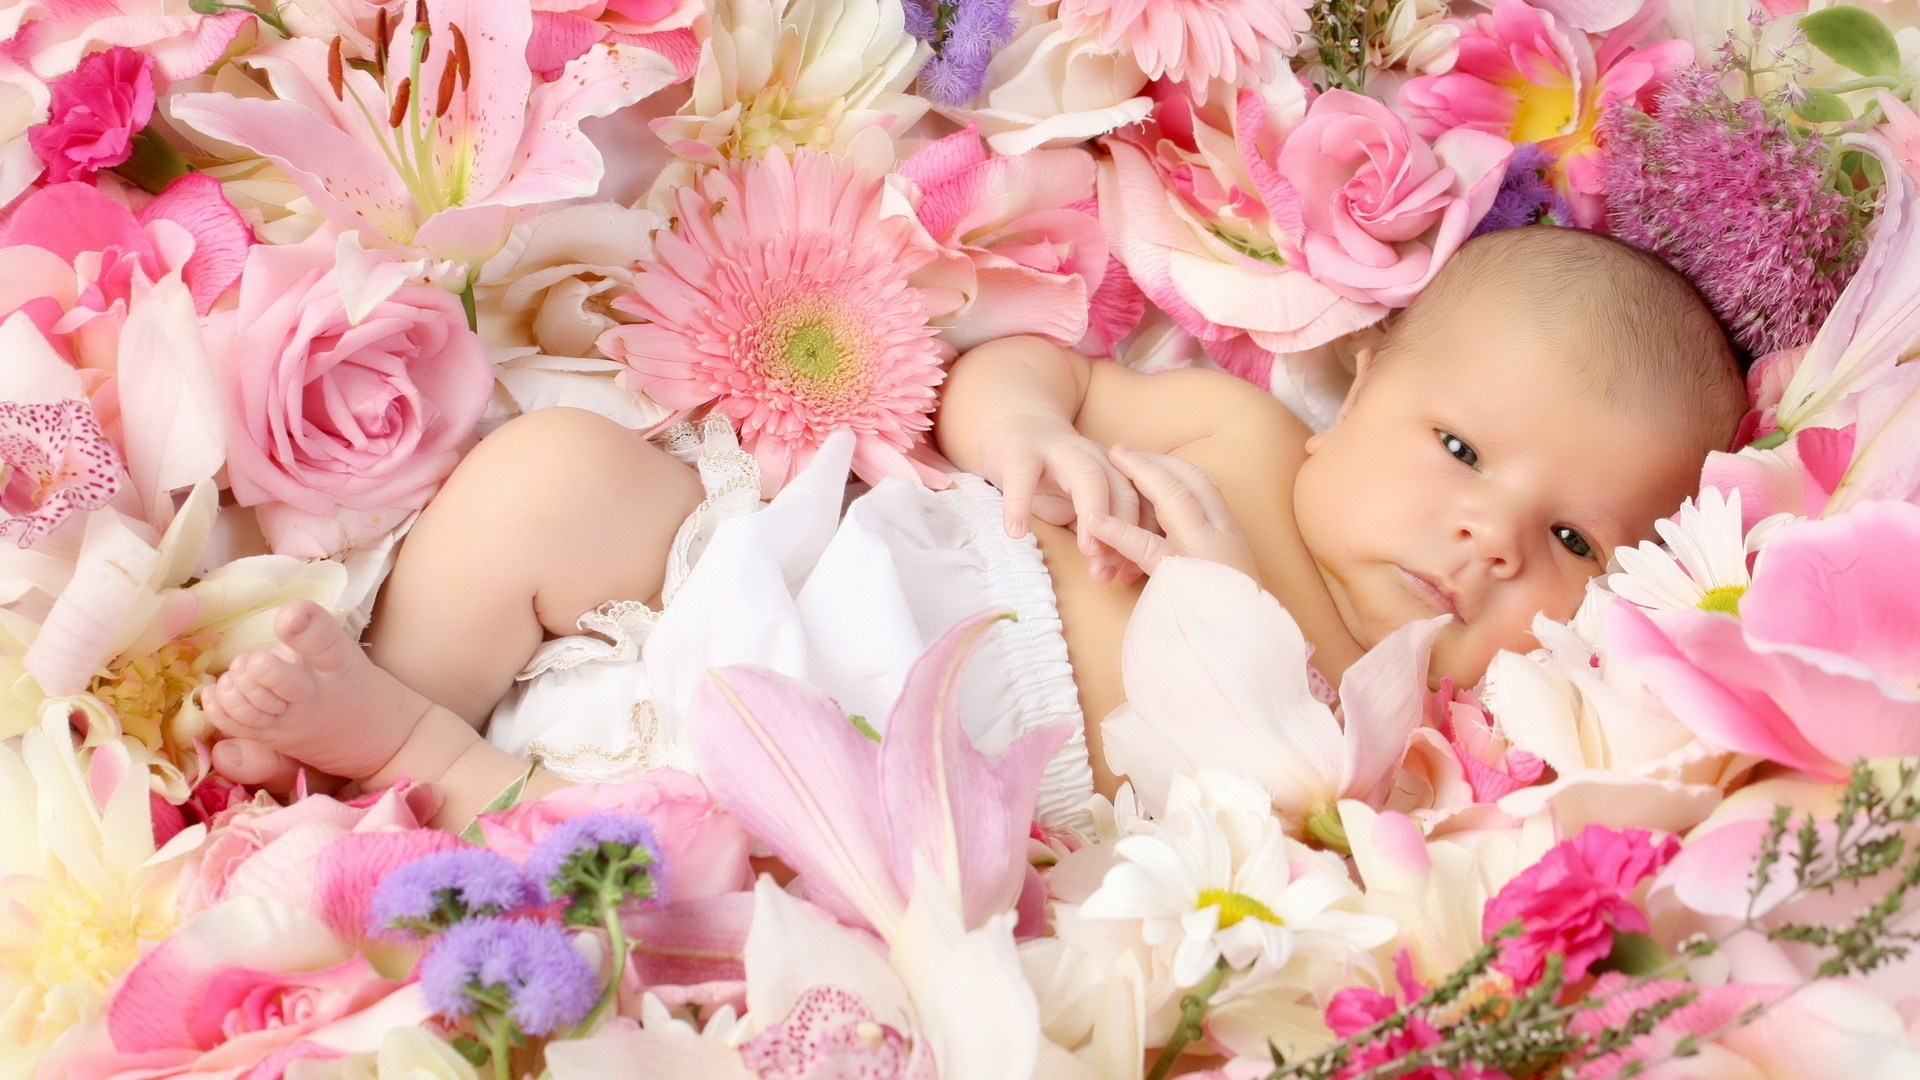 Cute Baby Lying Flowers Wallpaper HD Baby bwalles com 1920x1080